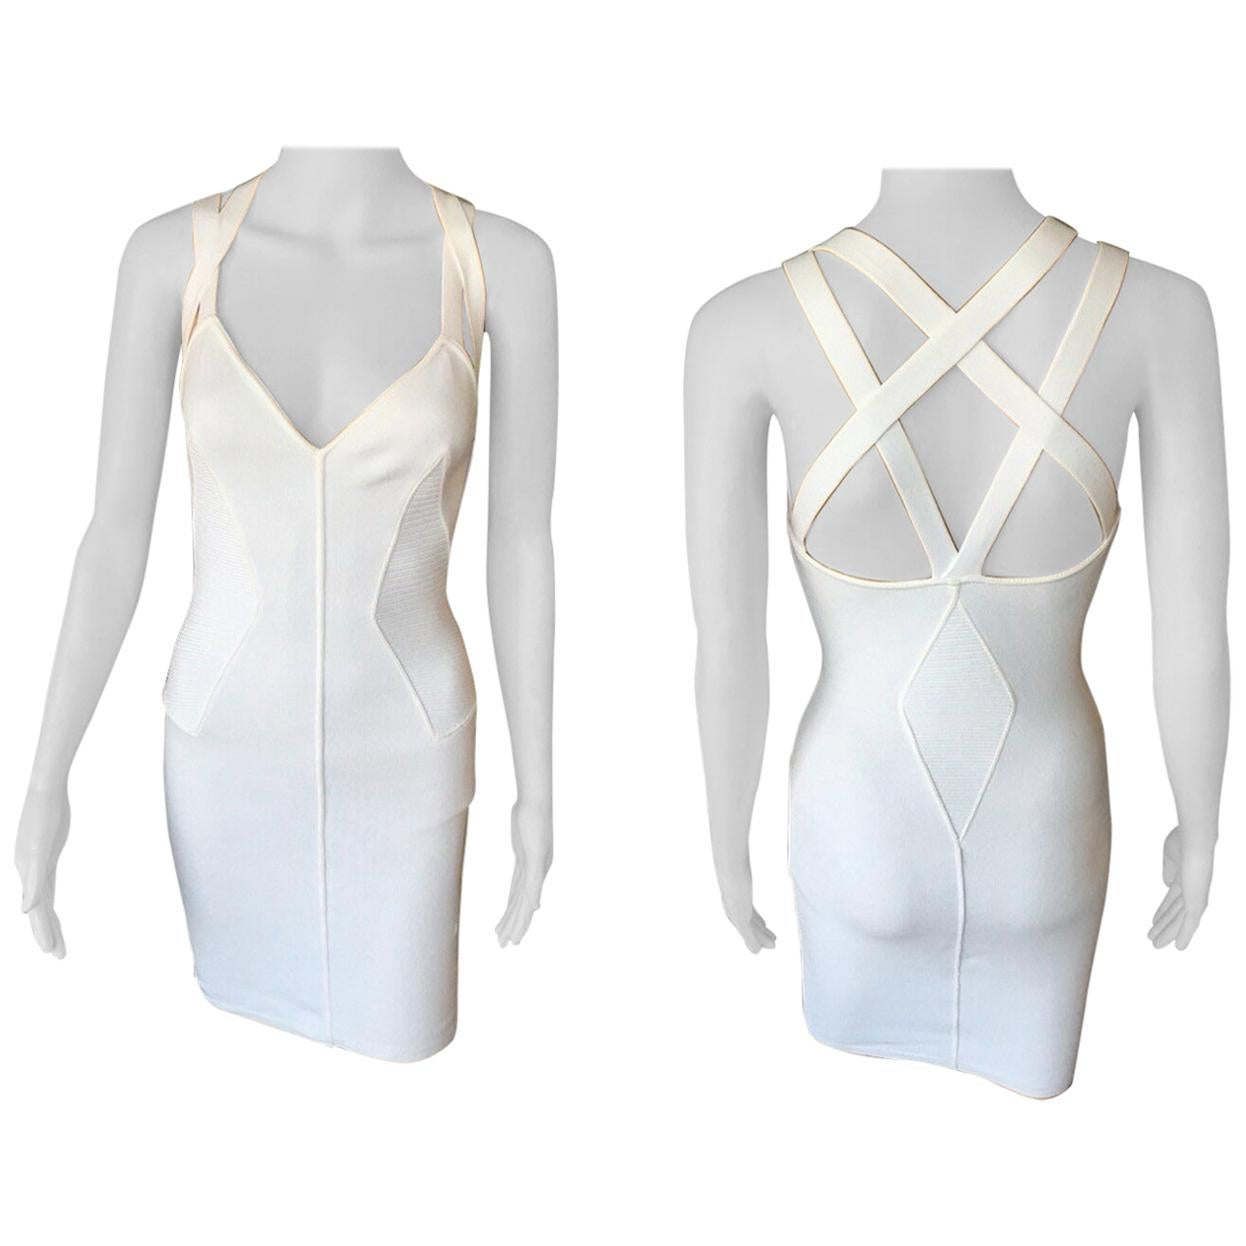 Azzedine Alaia S/S 1990 Vintage Fitted White Dress